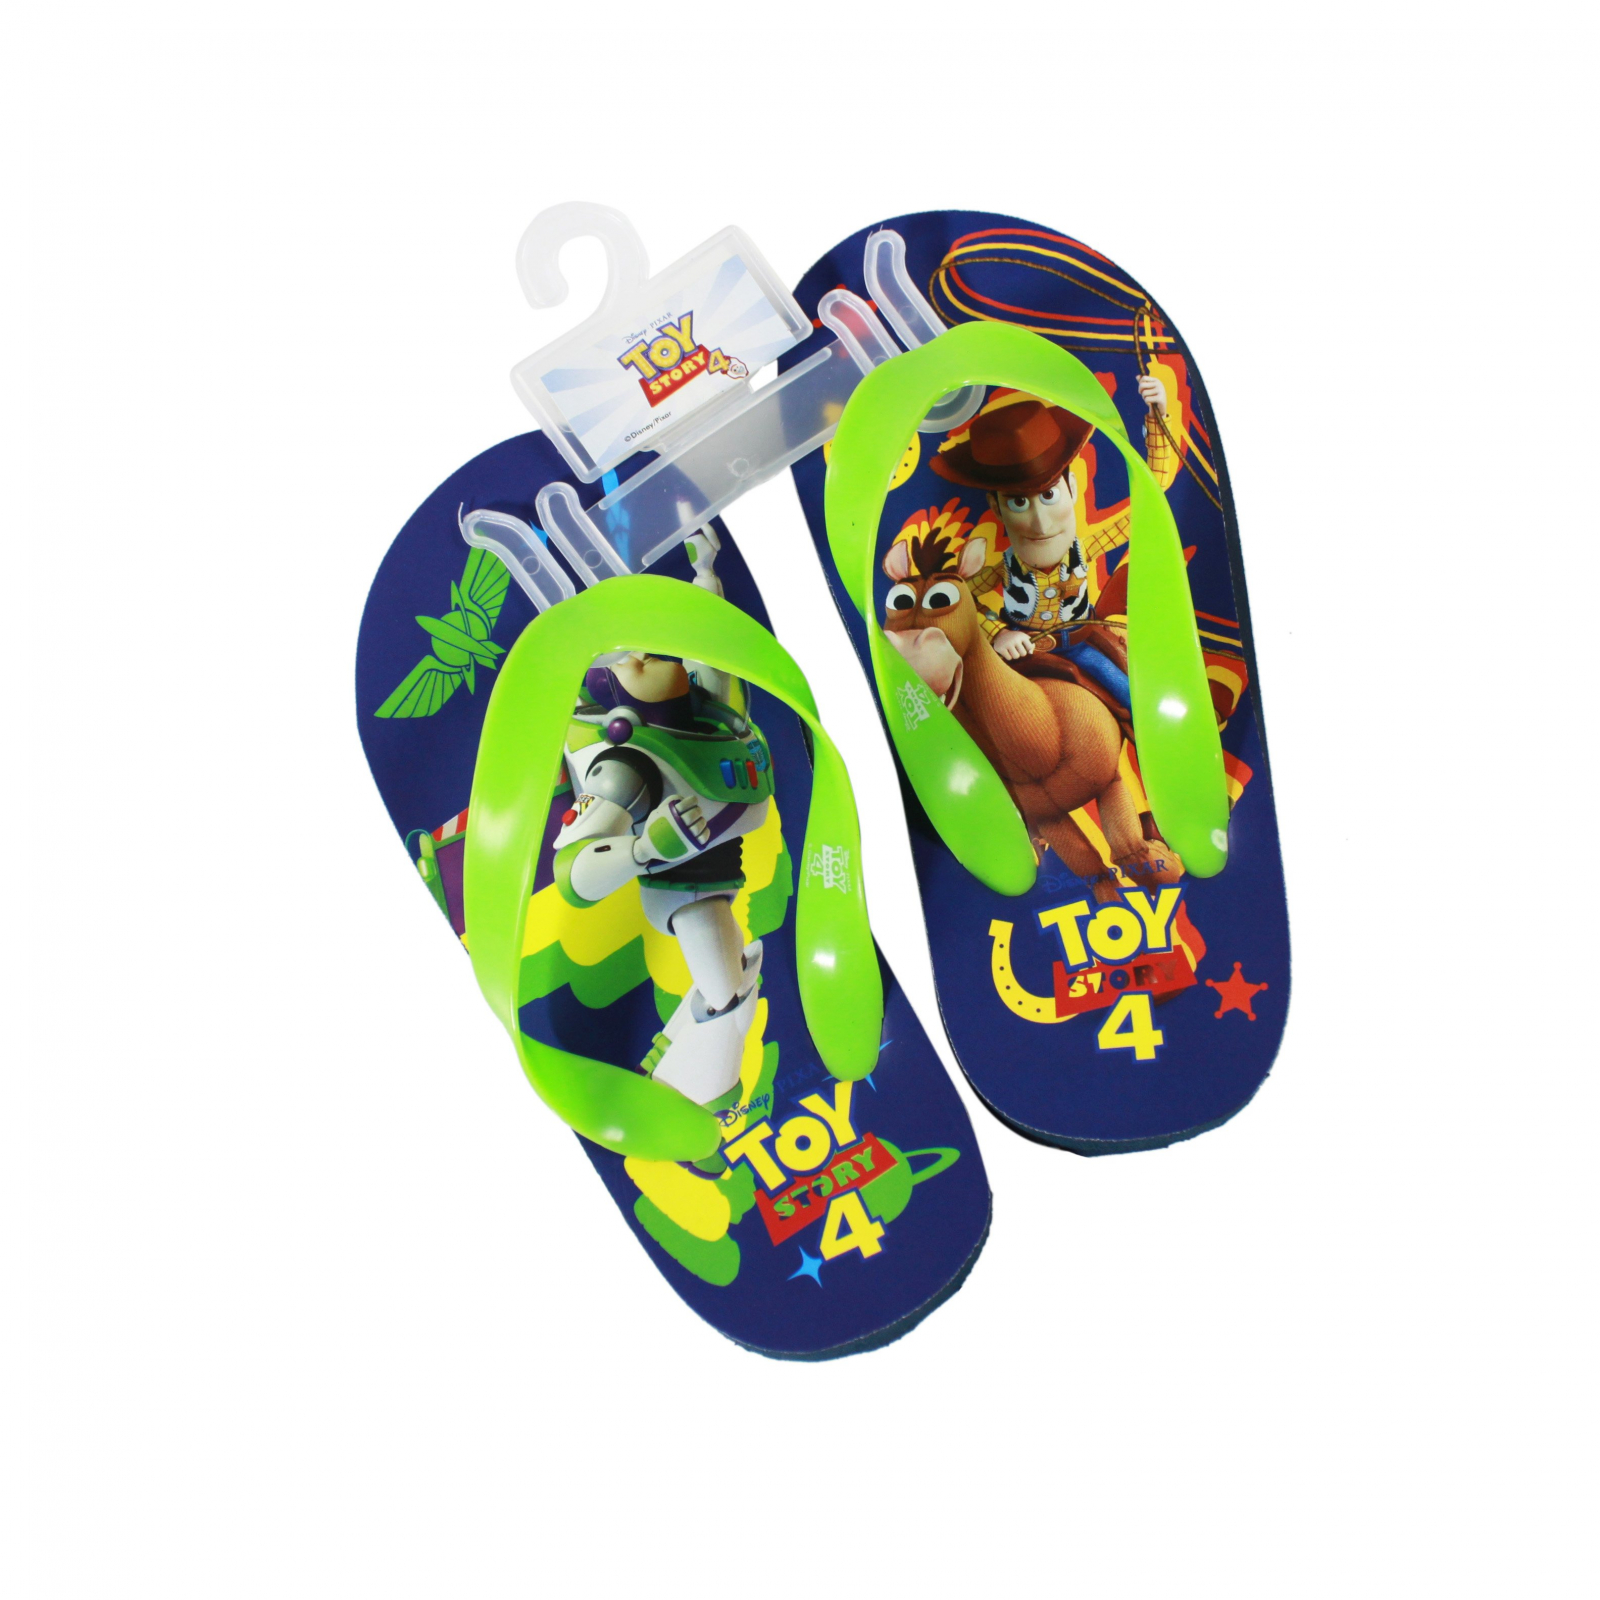 Disney Pixar Toy Story 4 Kid Sandals Green Strap Small 11/12